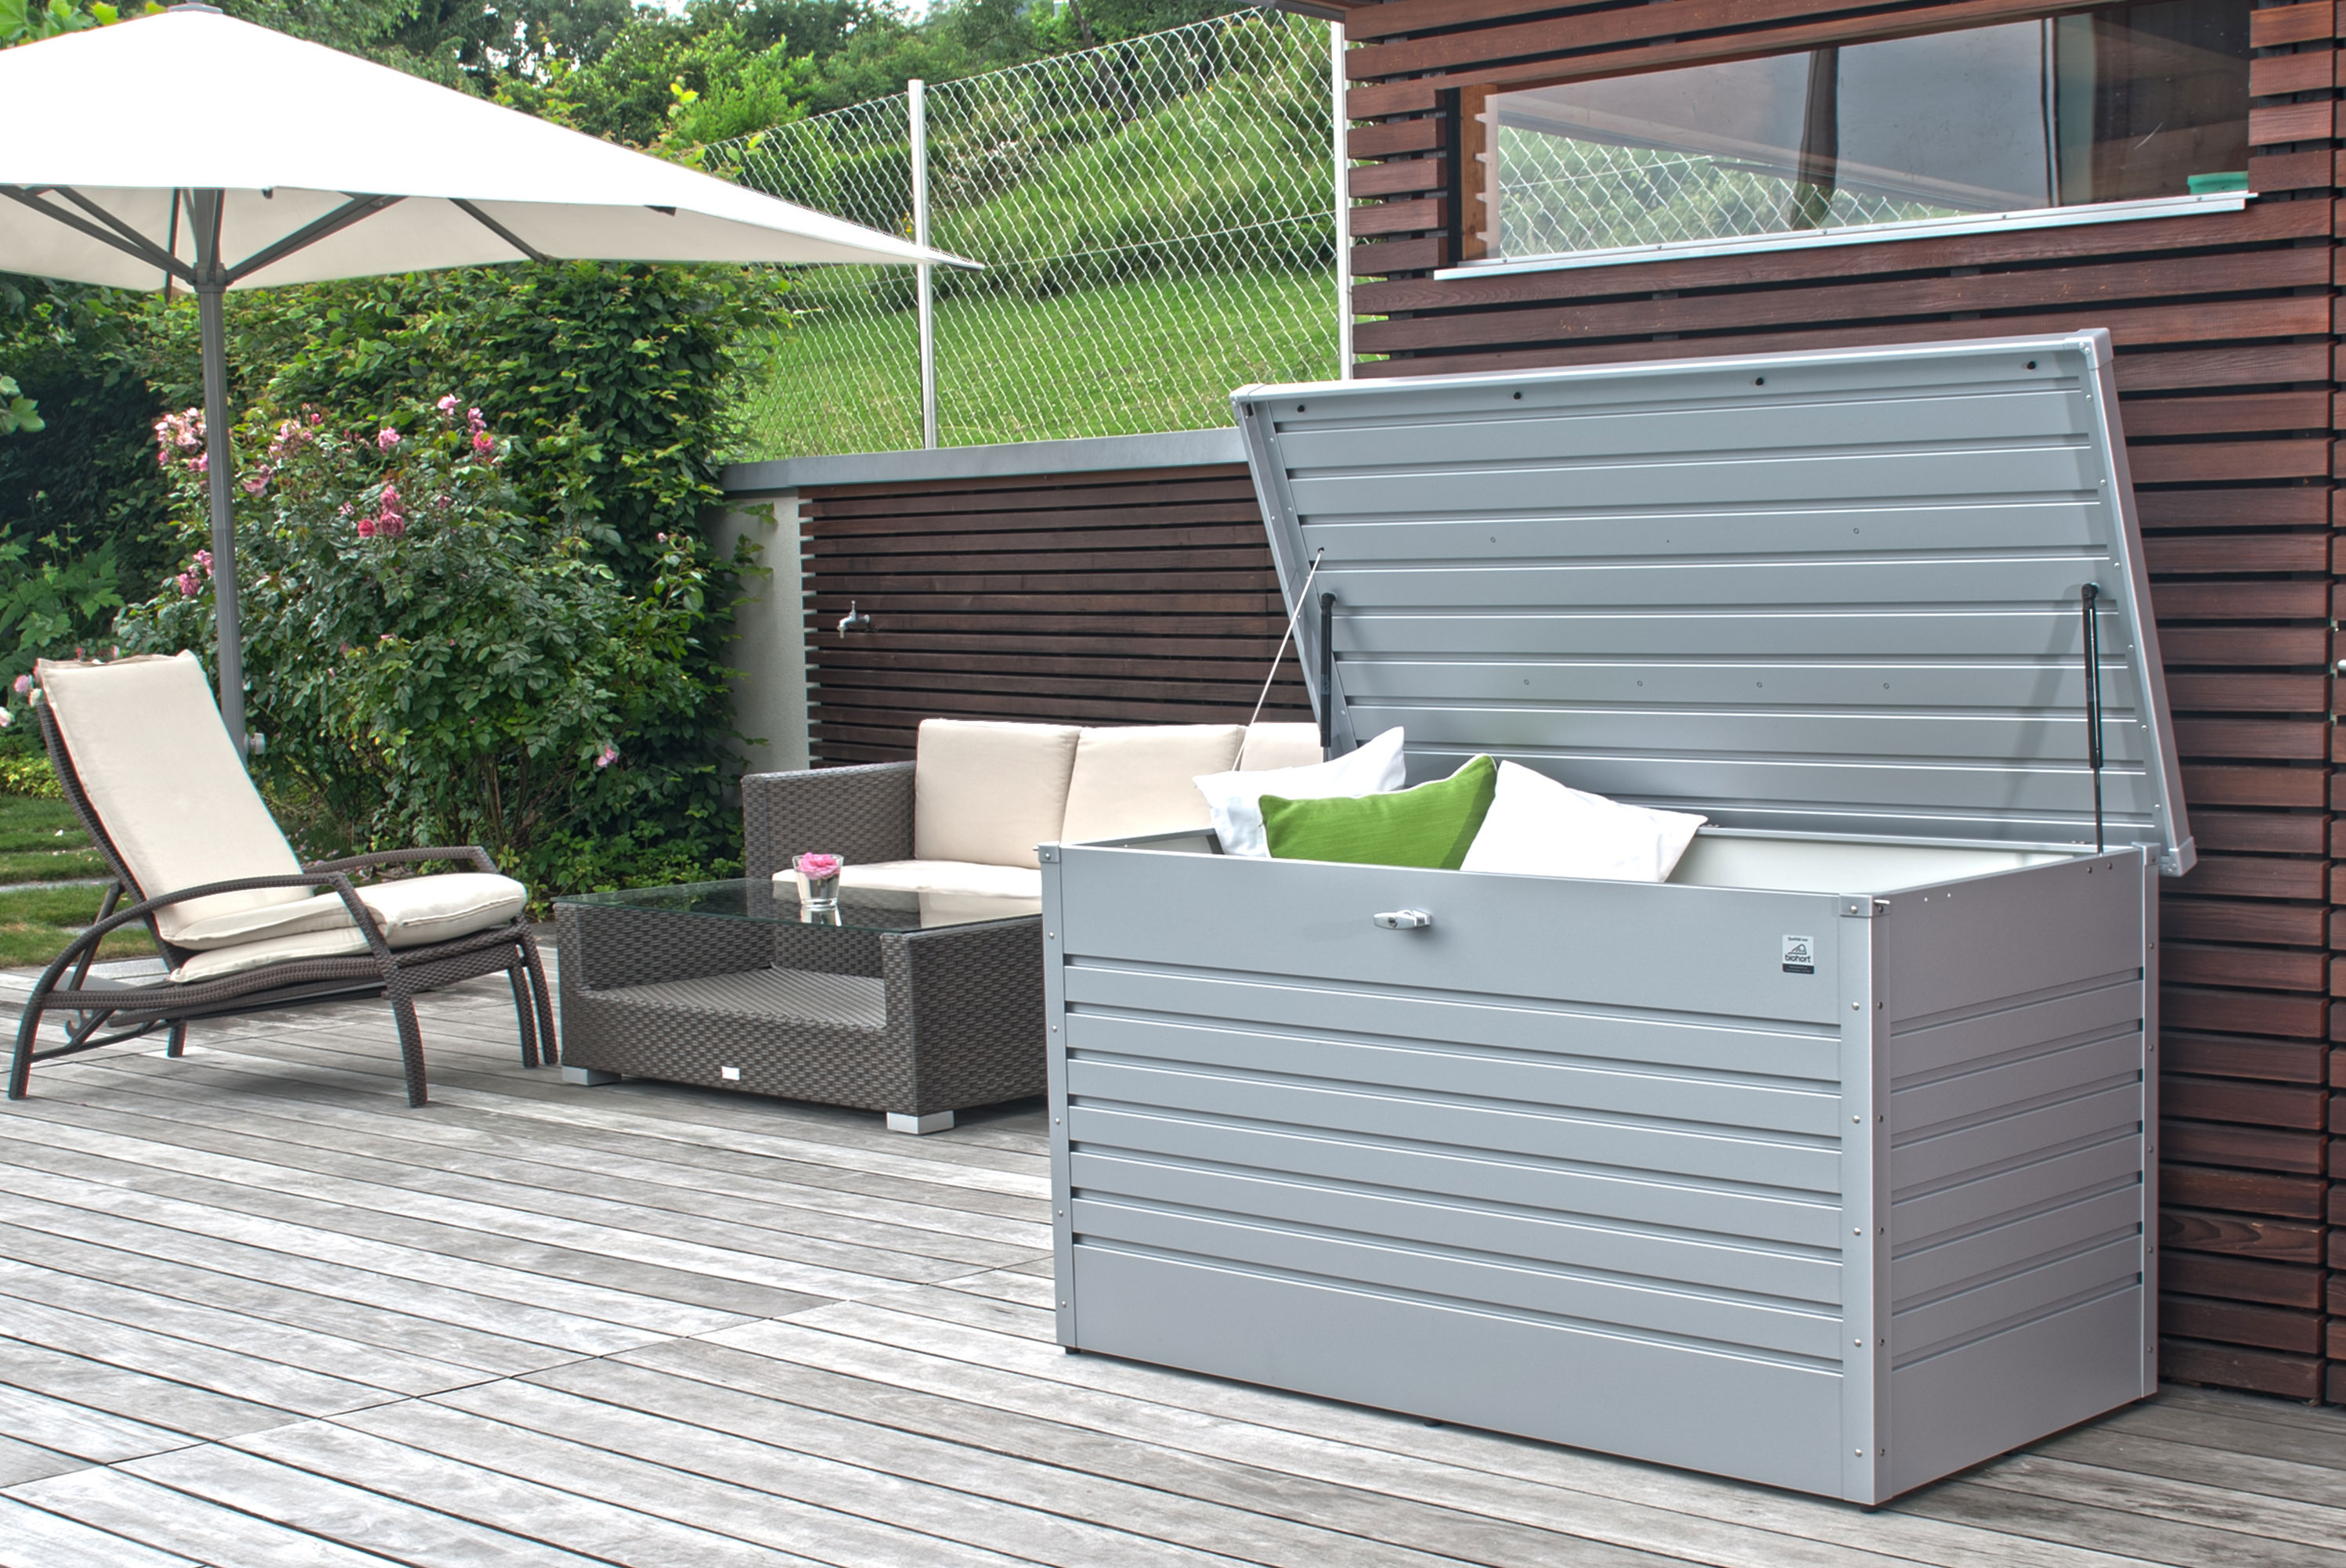 gartenbox auflagenbox biohort freizeitbox 160 weiss bei. Black Bedroom Furniture Sets. Home Design Ideas